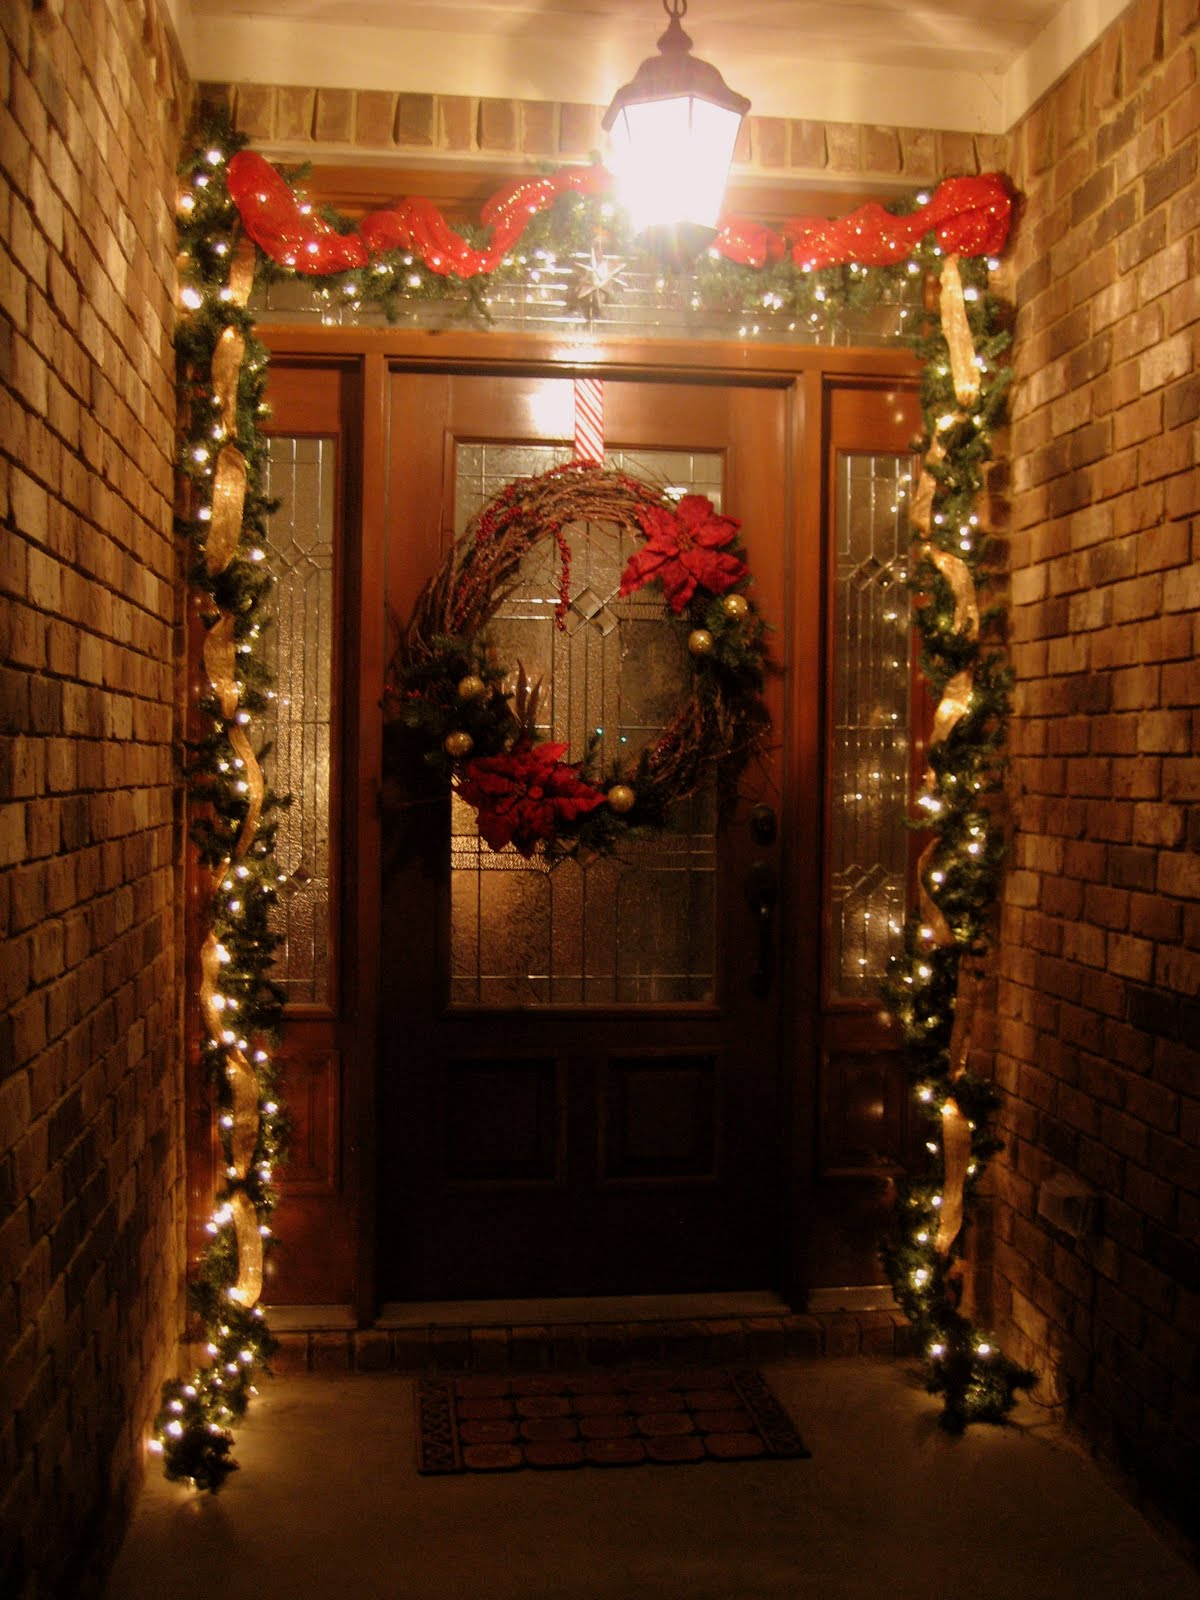 35 front door christmas decorations ideas for House and home christmas decor